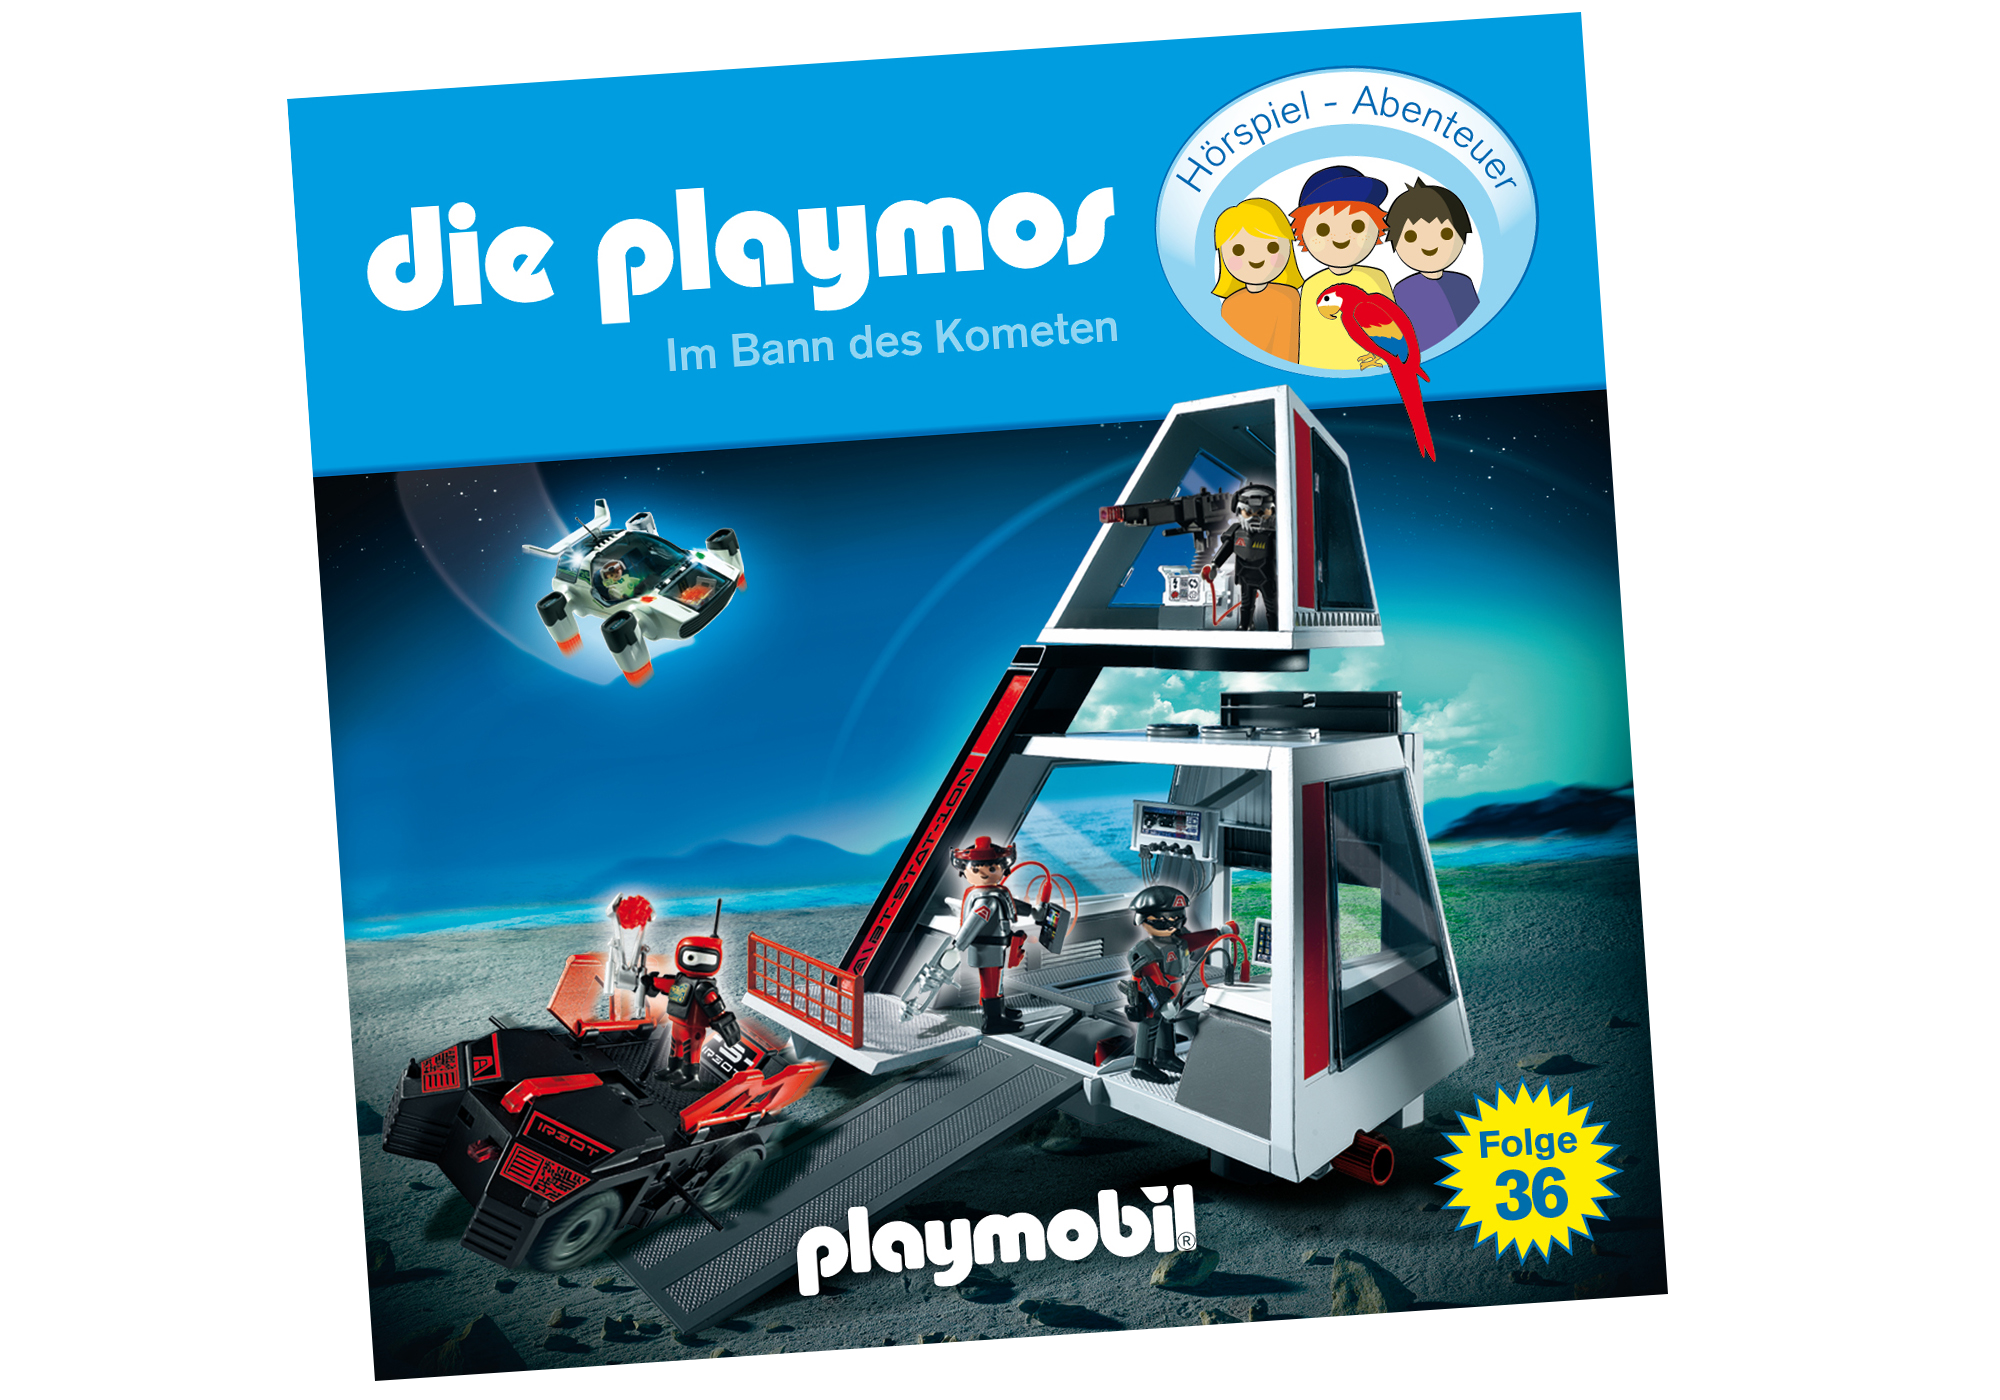 http://media.playmobil.com/i/playmobil/80447_product_detail